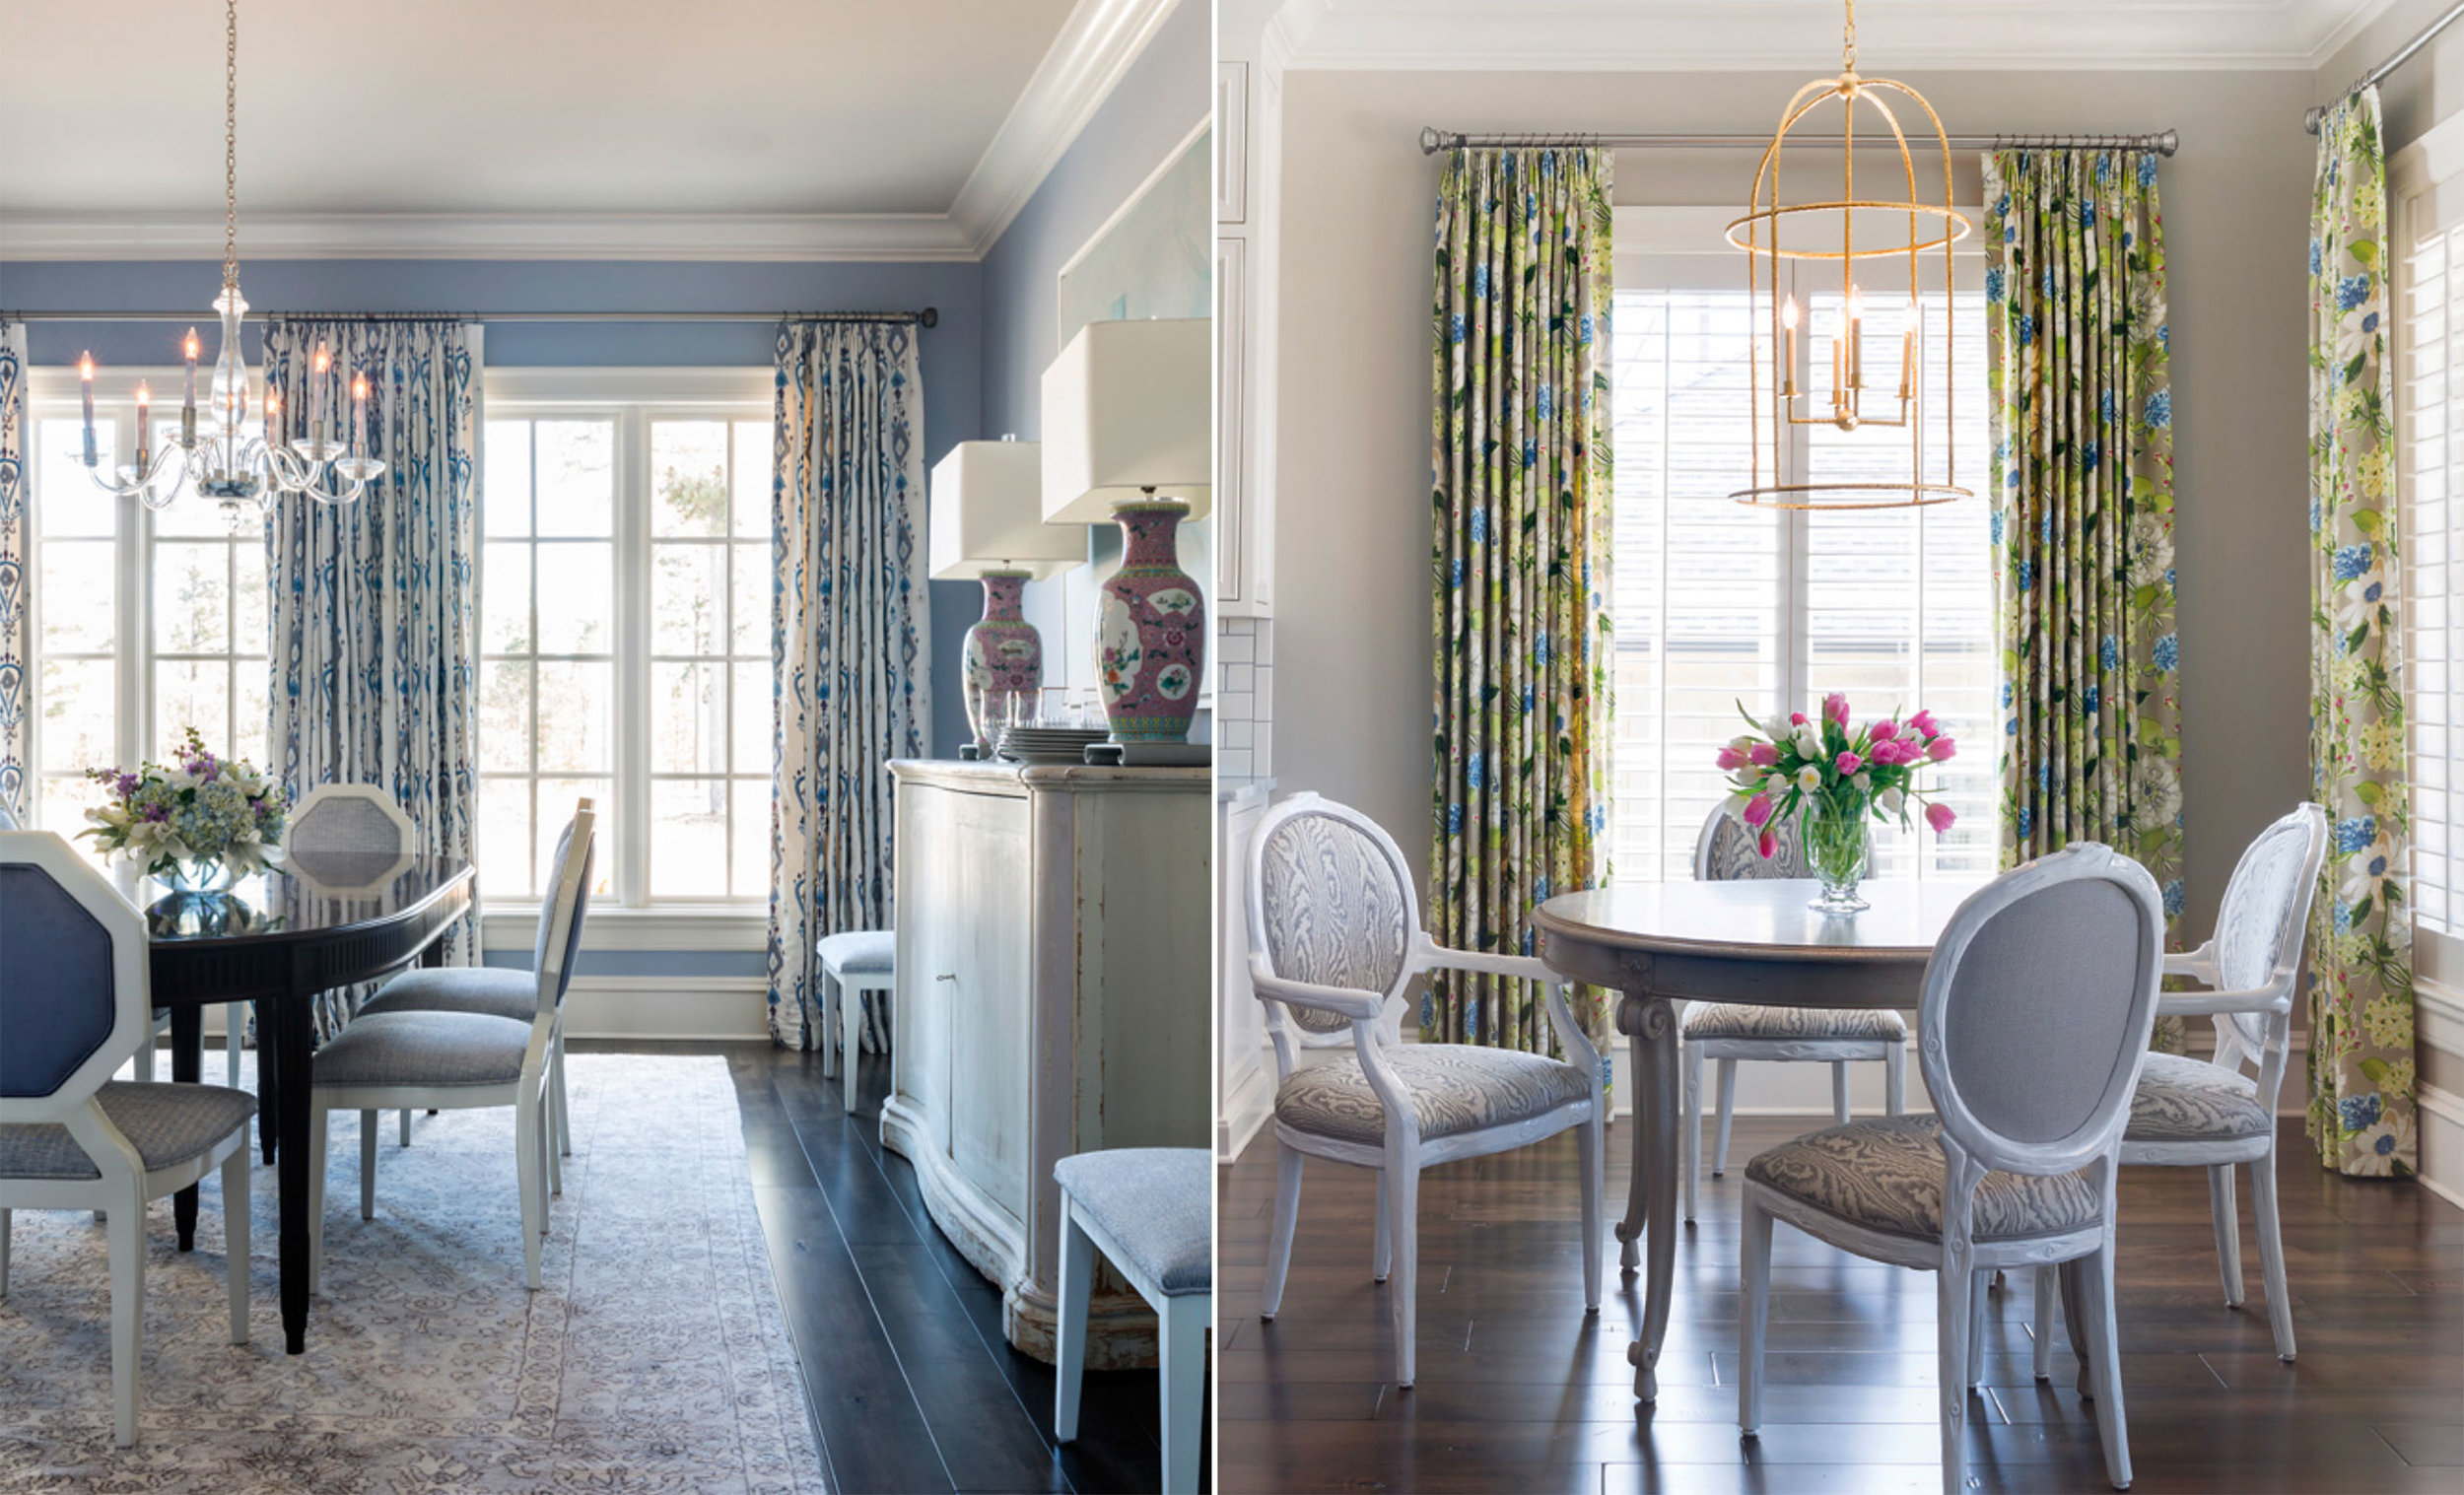 Interior design by Andrea Brooks, photographed by Nancy Nolan.